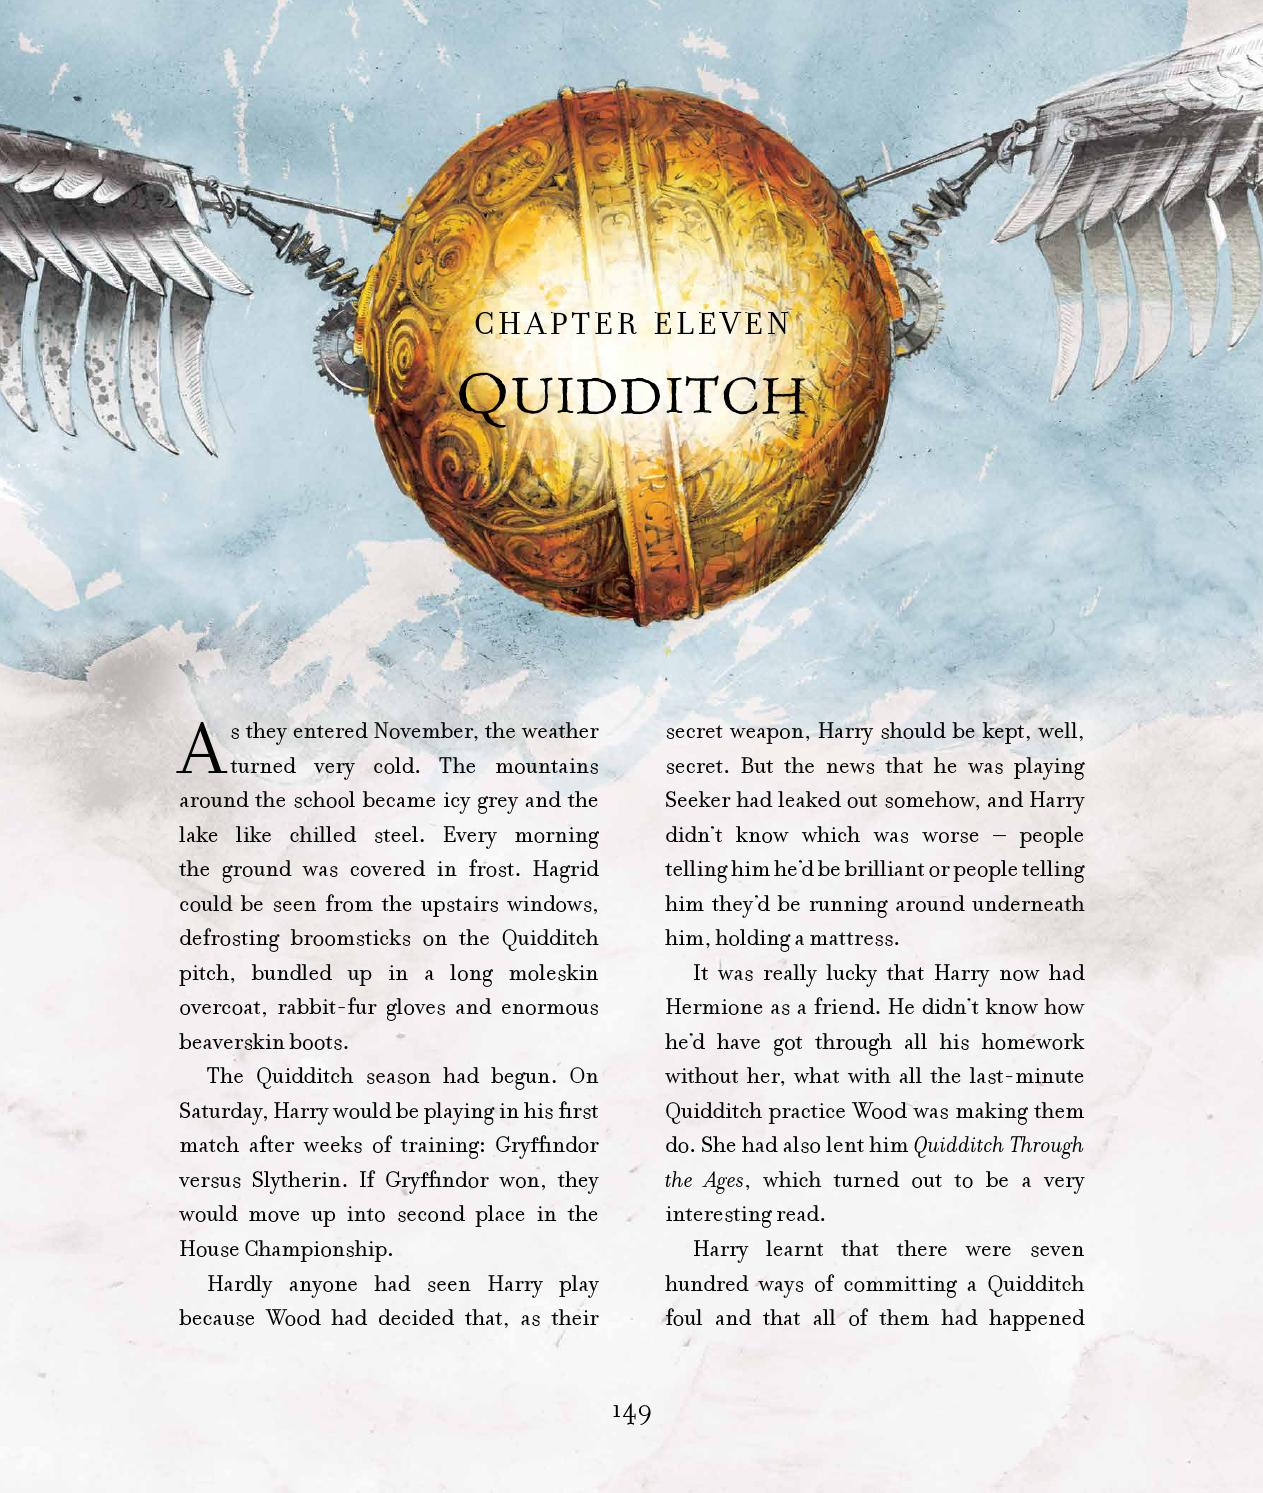 Harry Potter Book Extract : Issuu harry potter and the philosopher s stone by j k